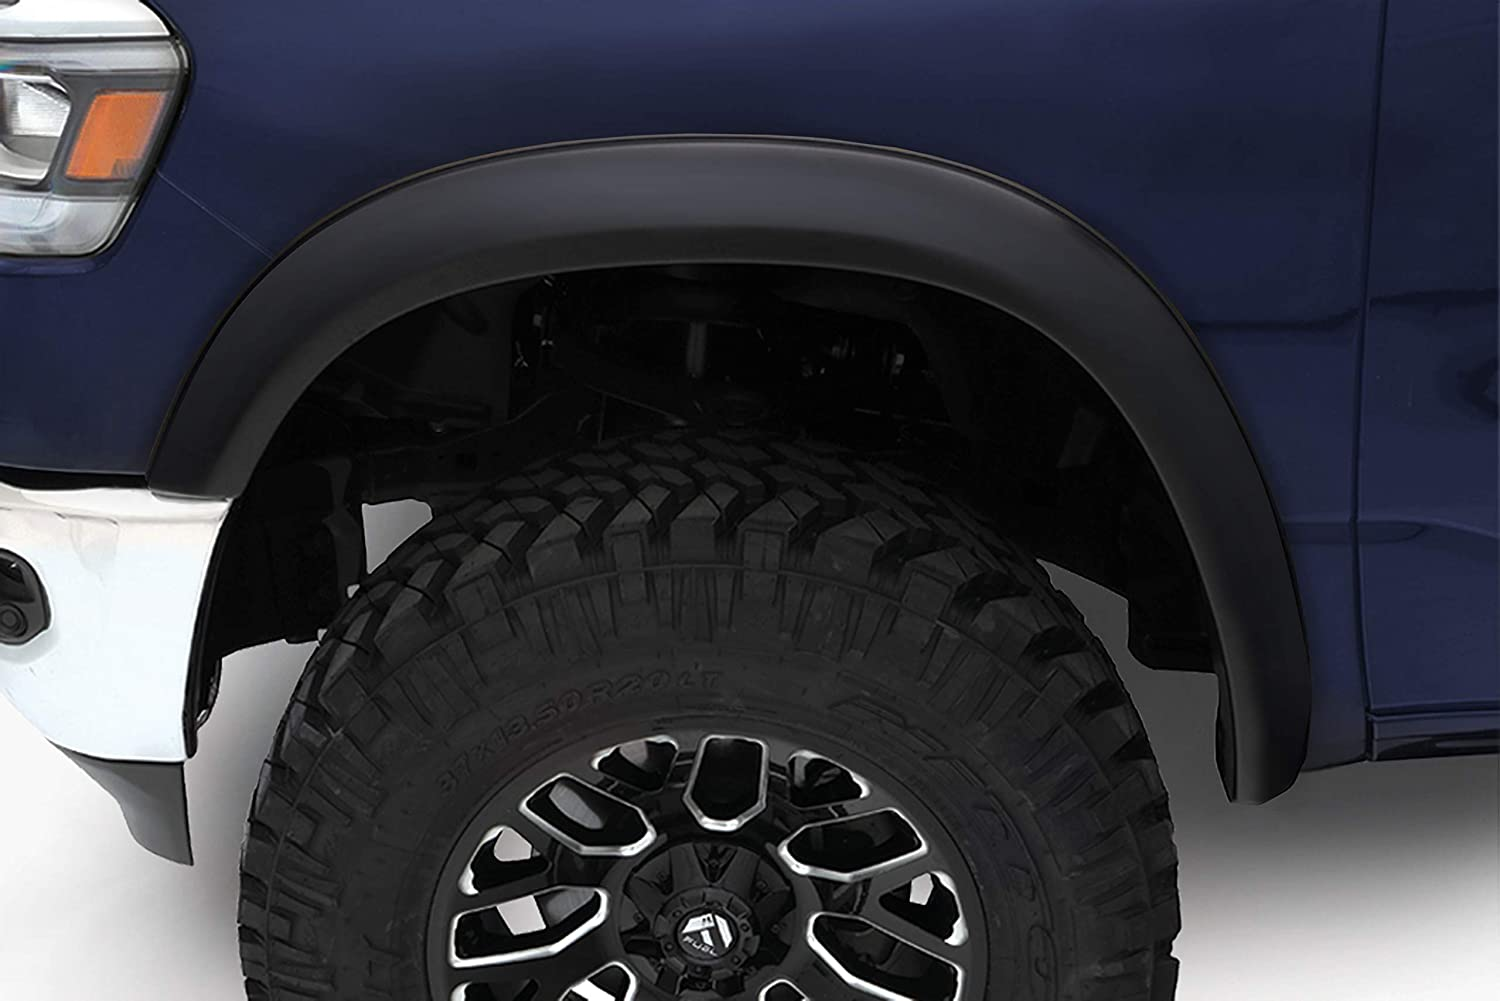 Bushwacker 50928-02 Black OE-Style Smooth Finish 4-Piece Fender Flare Set for 2019 Ram 1500 Excludes Rebel